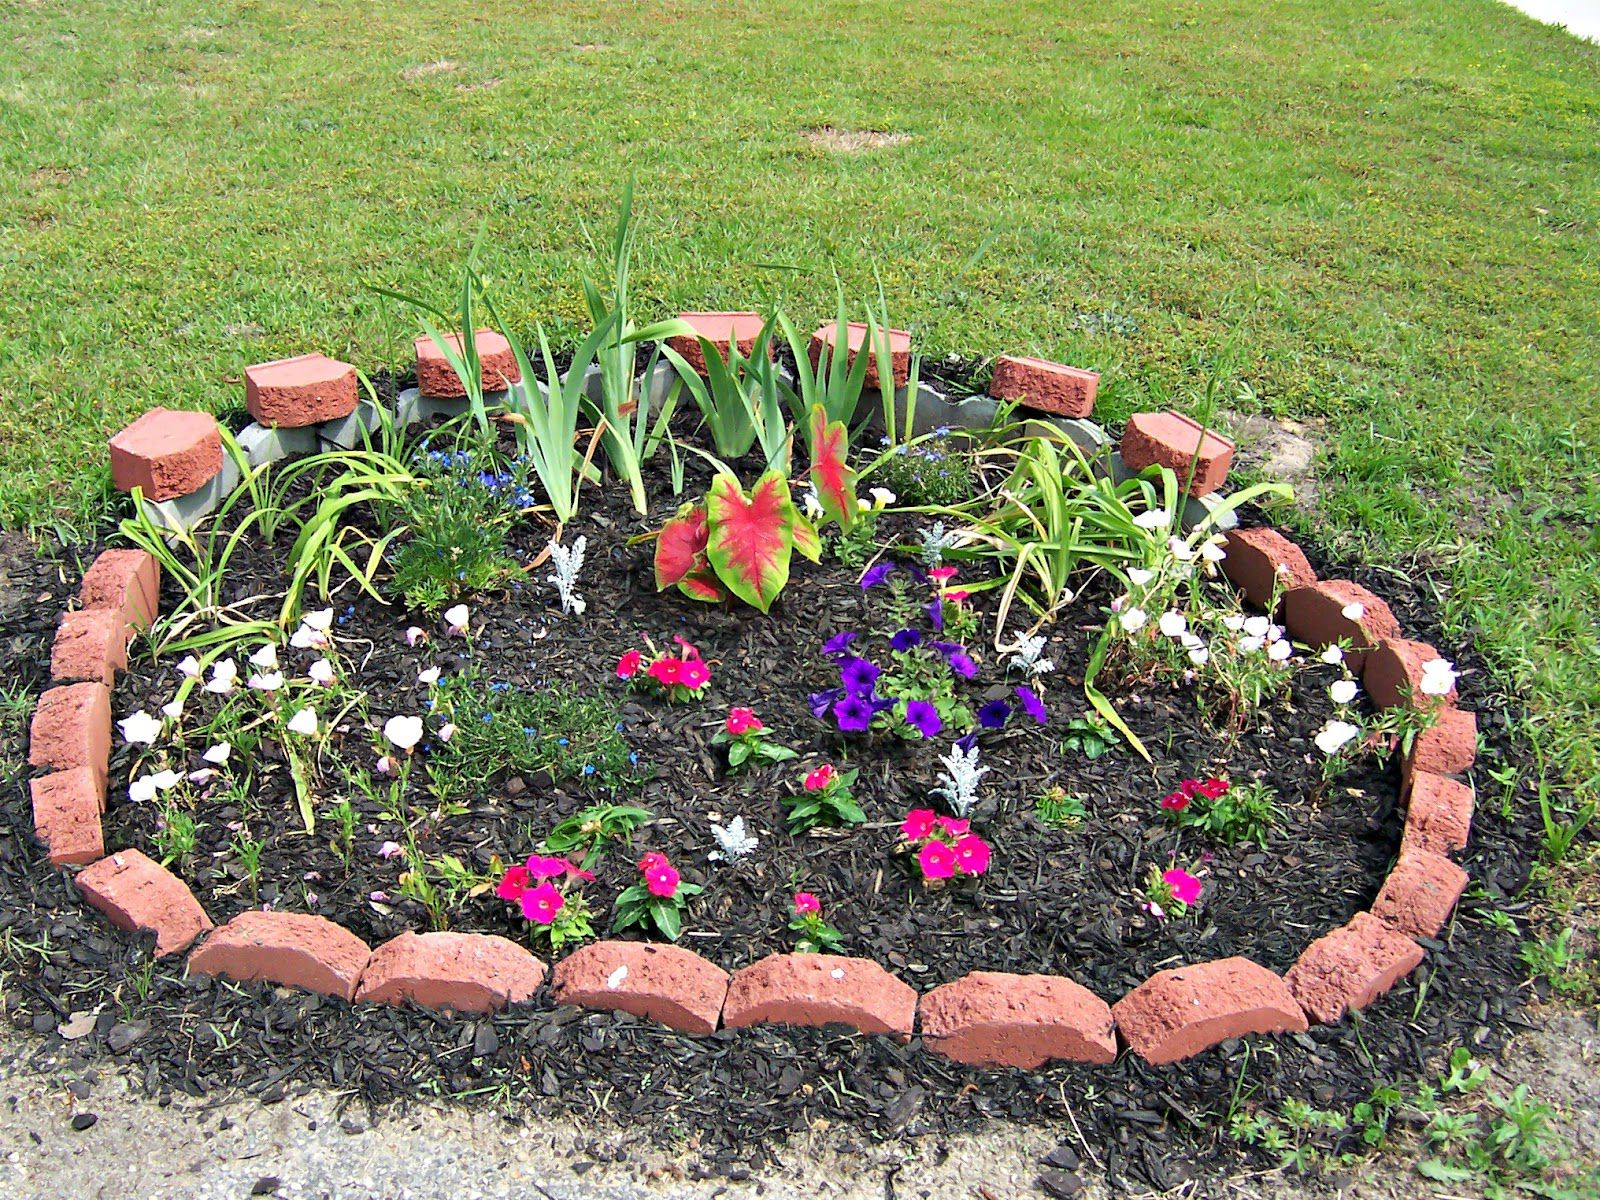 The diy beautiful flower bed designs and plans for your for Bordi per aiuole fai da te